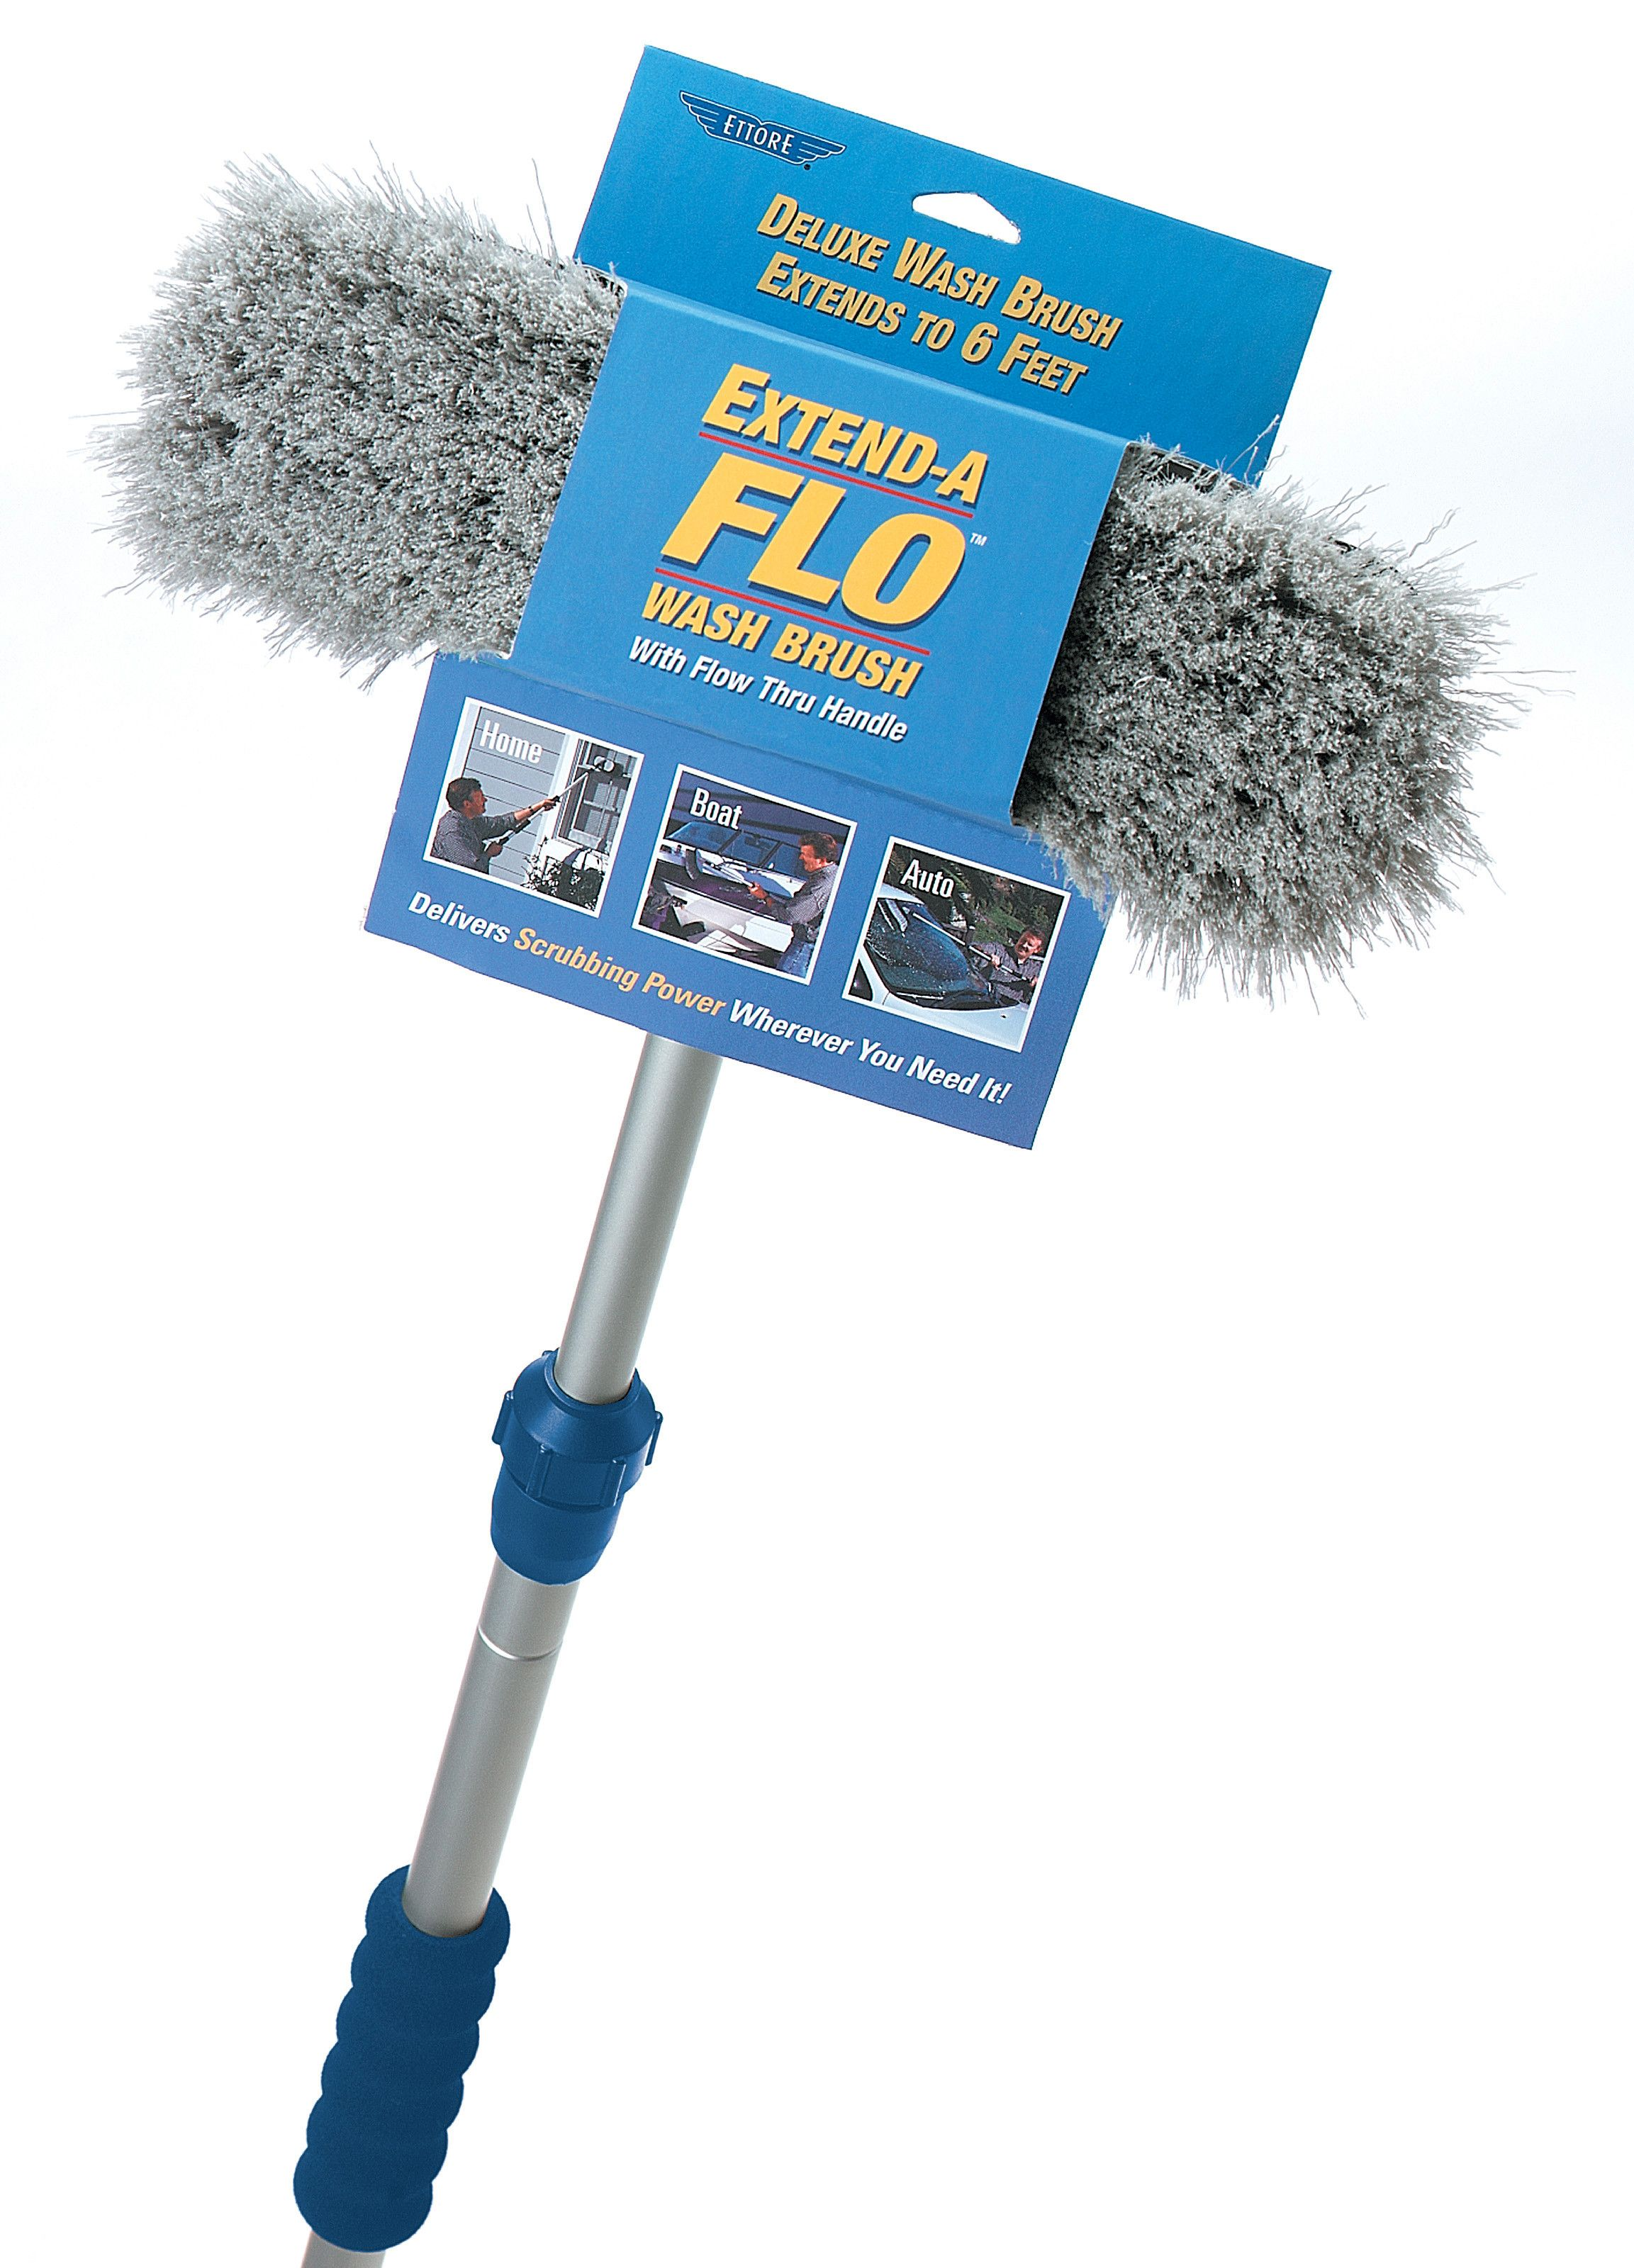 Ettore S Extend A Flo Wash Brush Handle Connects To A Variety Of